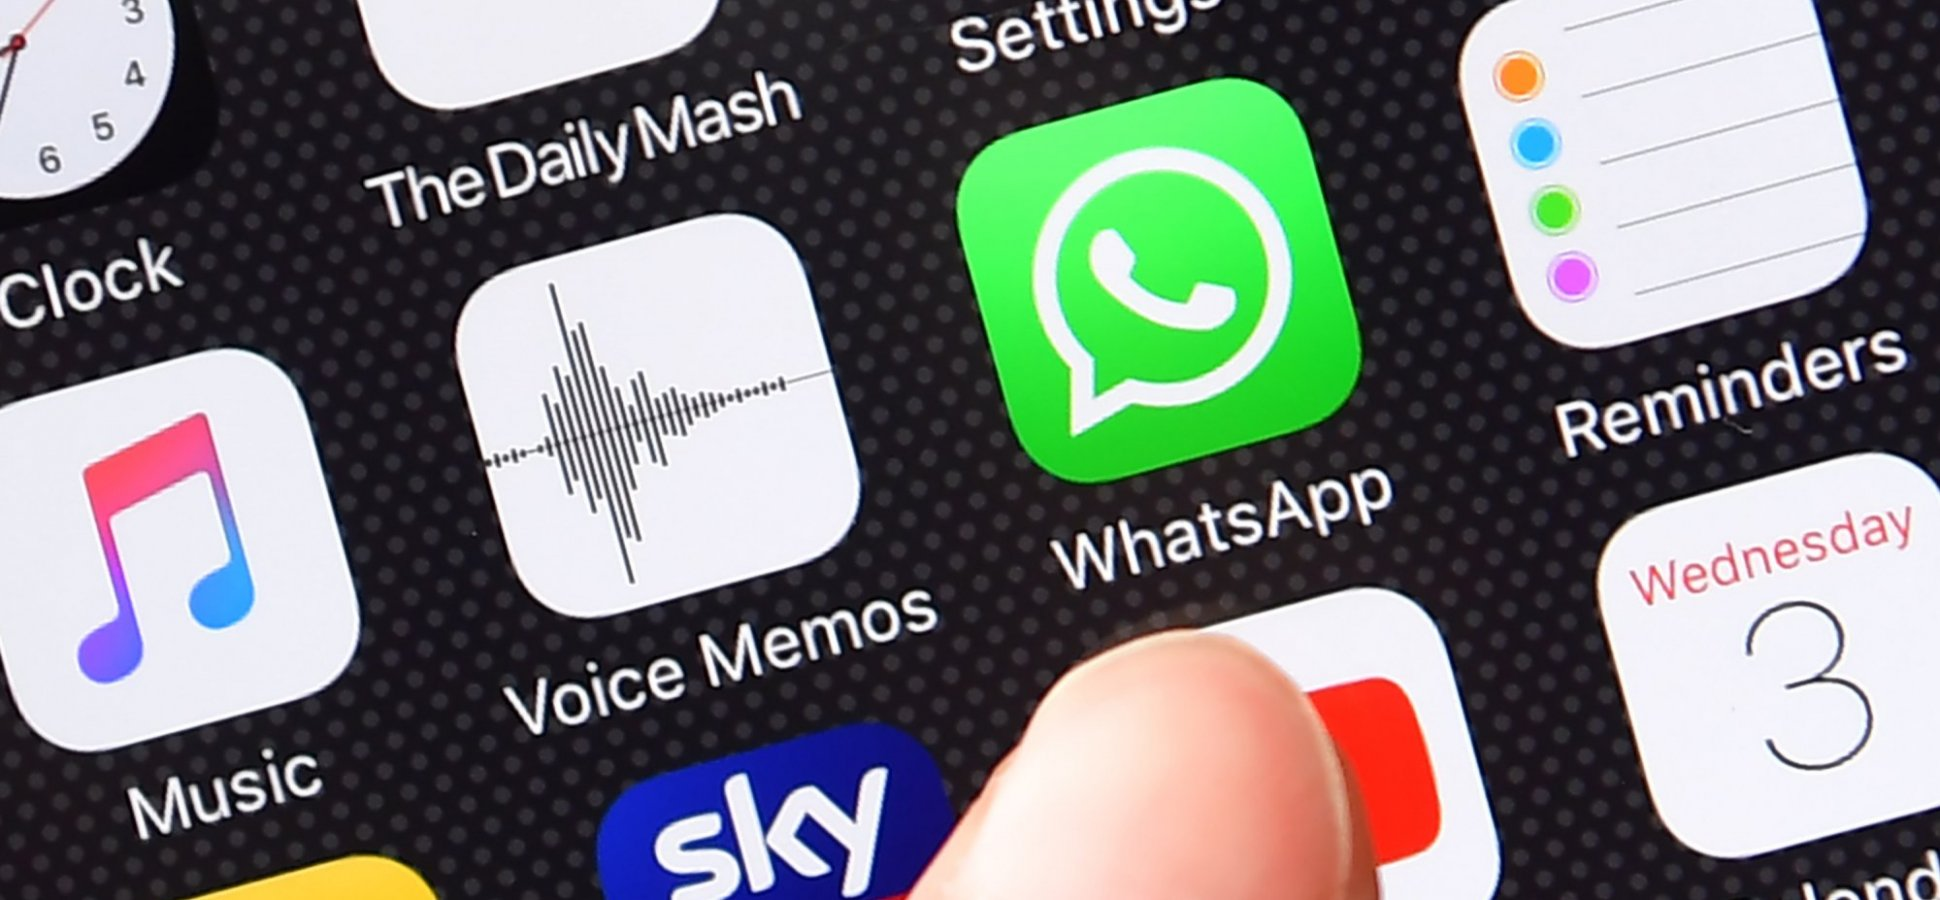 bab4d4c5d0 WhatsApp Marketing Just Became a Huge Deal  Here s How 5 Innovative Brands  Broke In